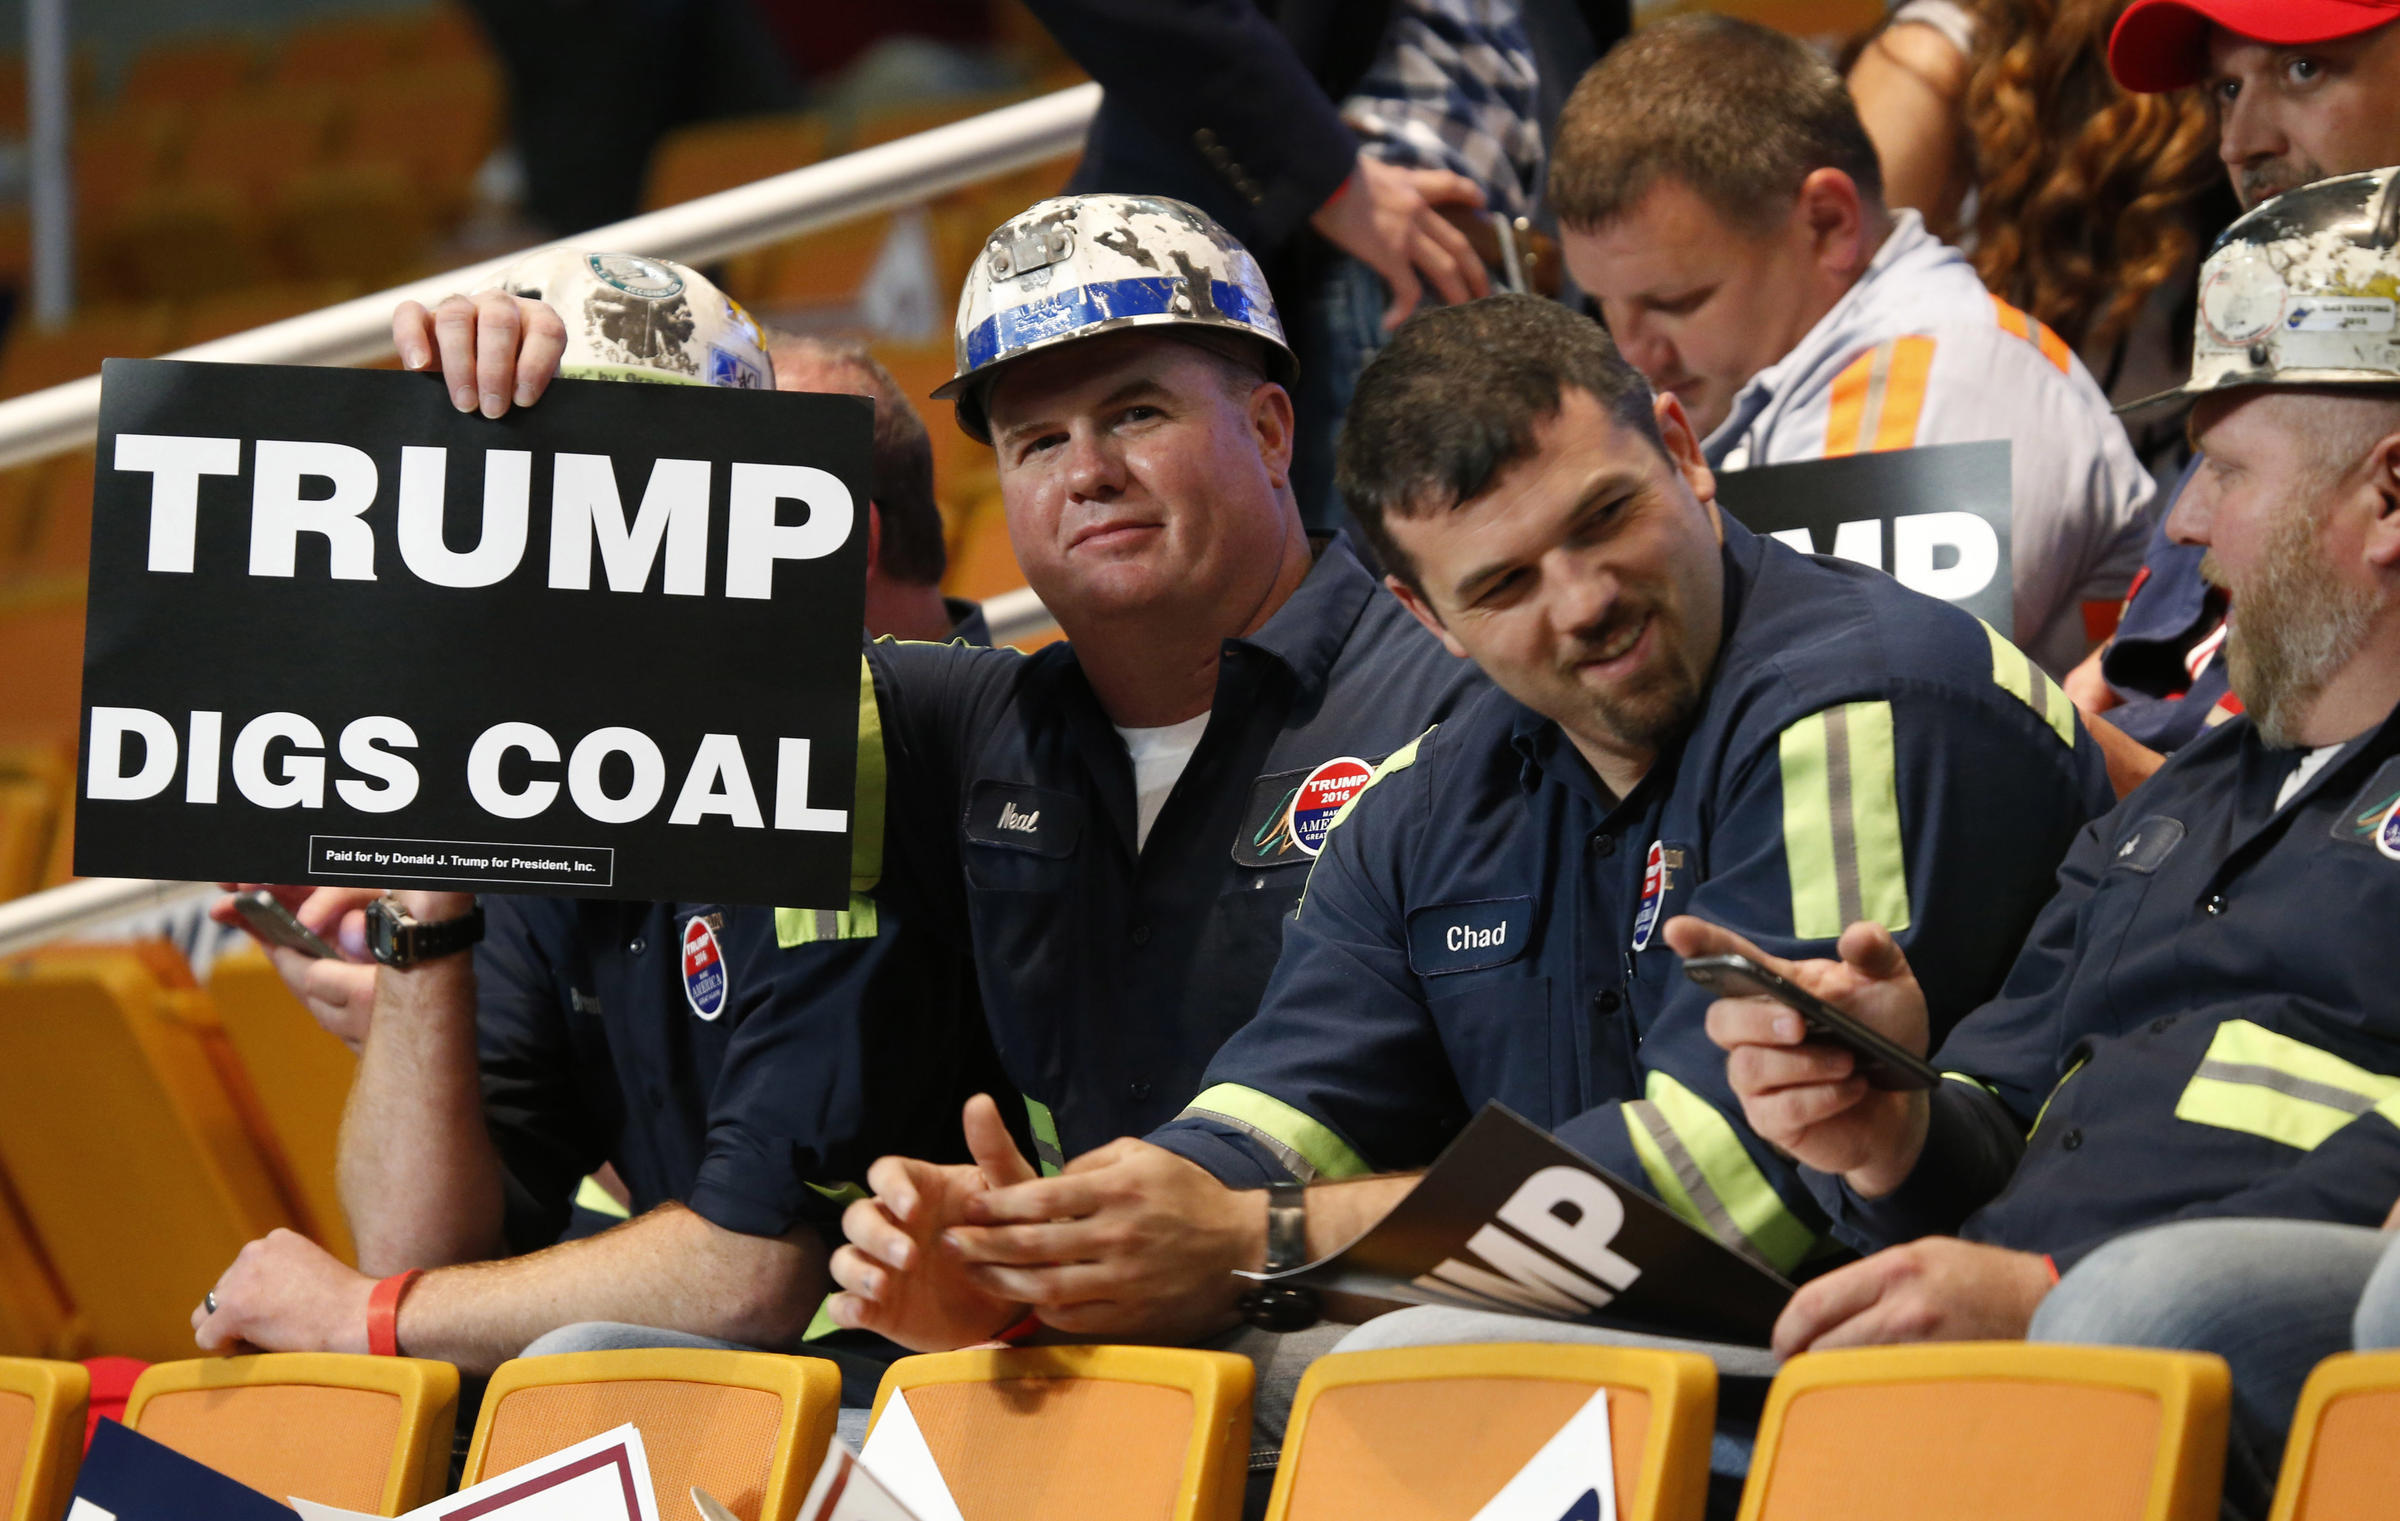 A group of coal miners hold Trump signs as they wait for a rally with Republican presidential candidate Donald Trump, Thursday, May 5, 2016, in Charleston, W.Va. (AP Photo/Steve Helber)